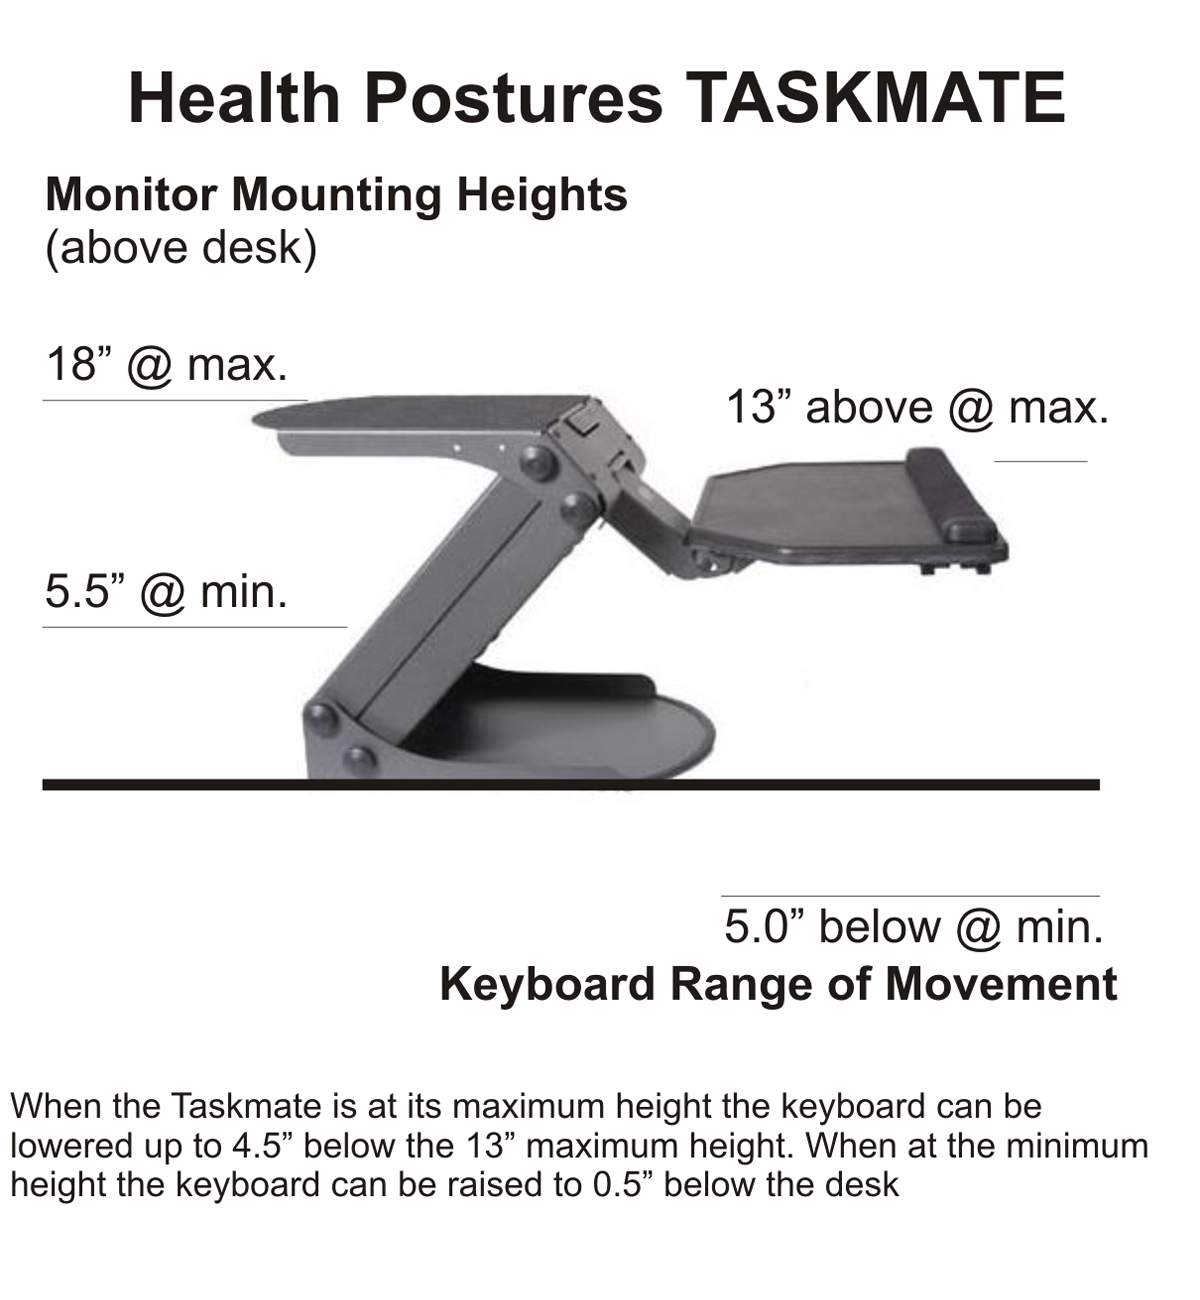 TaskMate Executive range of motion